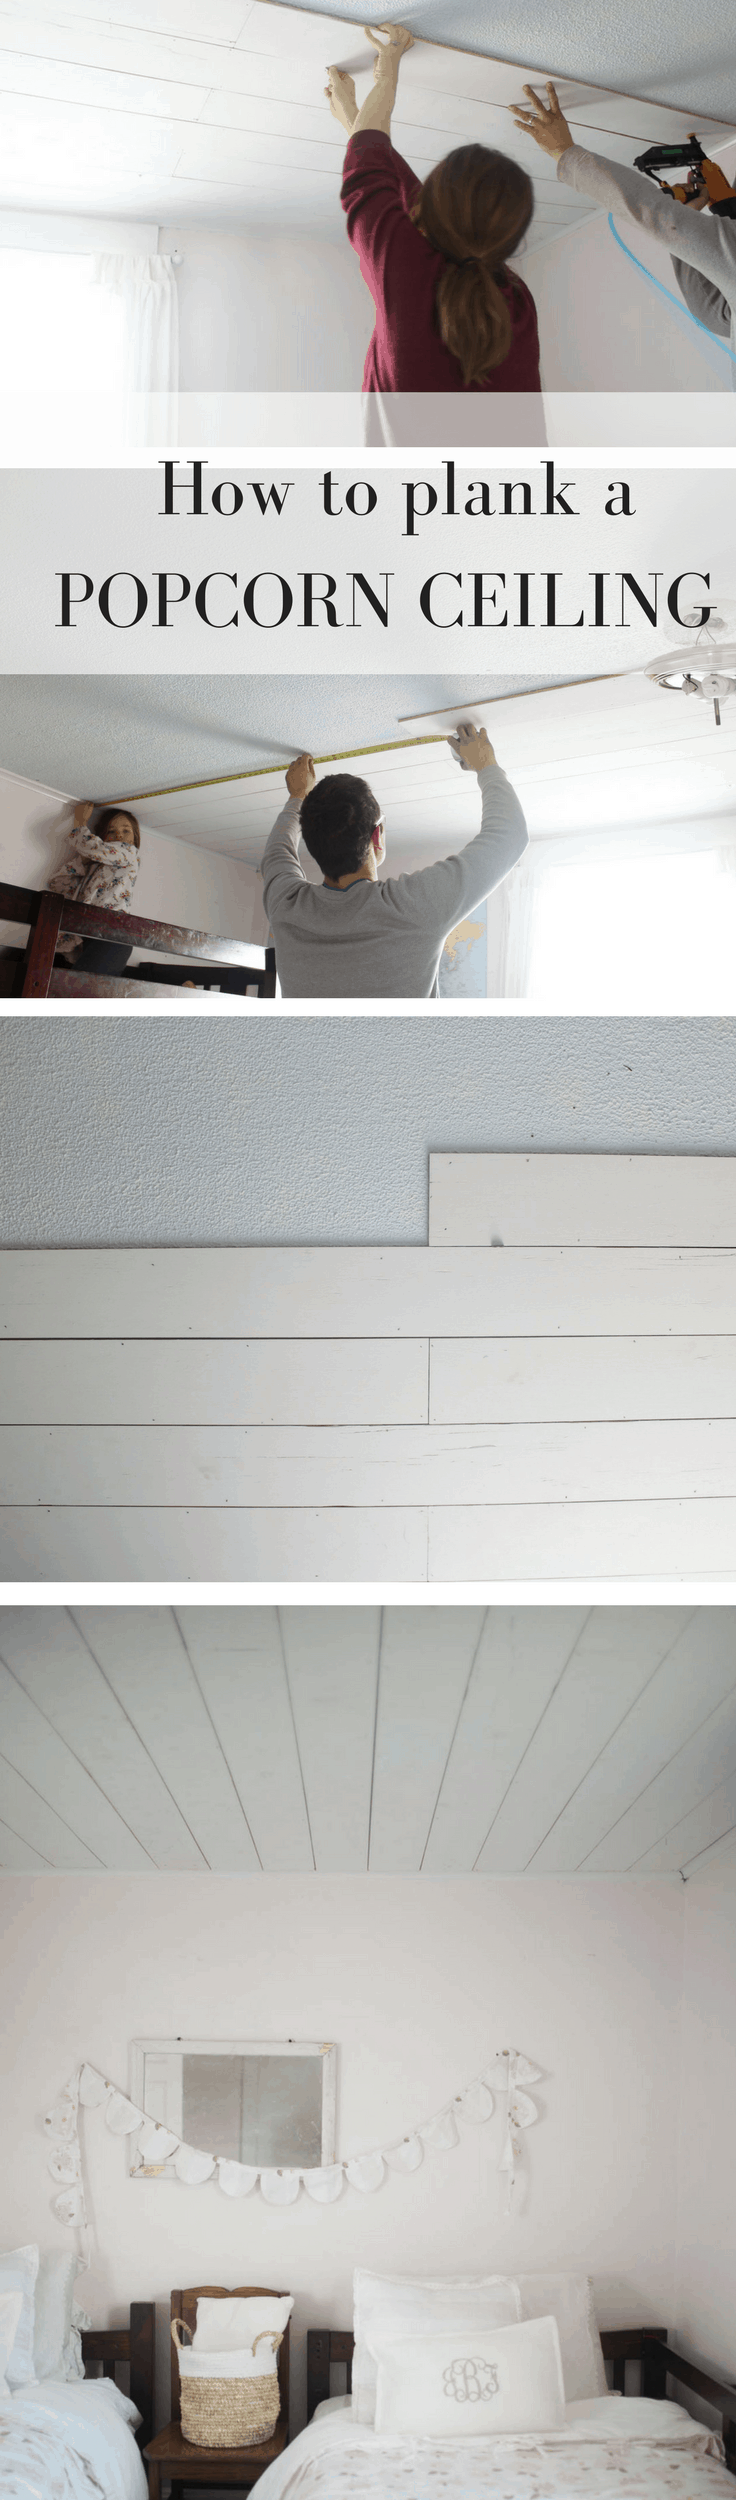 Learn How To Plank A Popcorn Ceiling Cover Up That Ugly Texture And Create Farmhouse